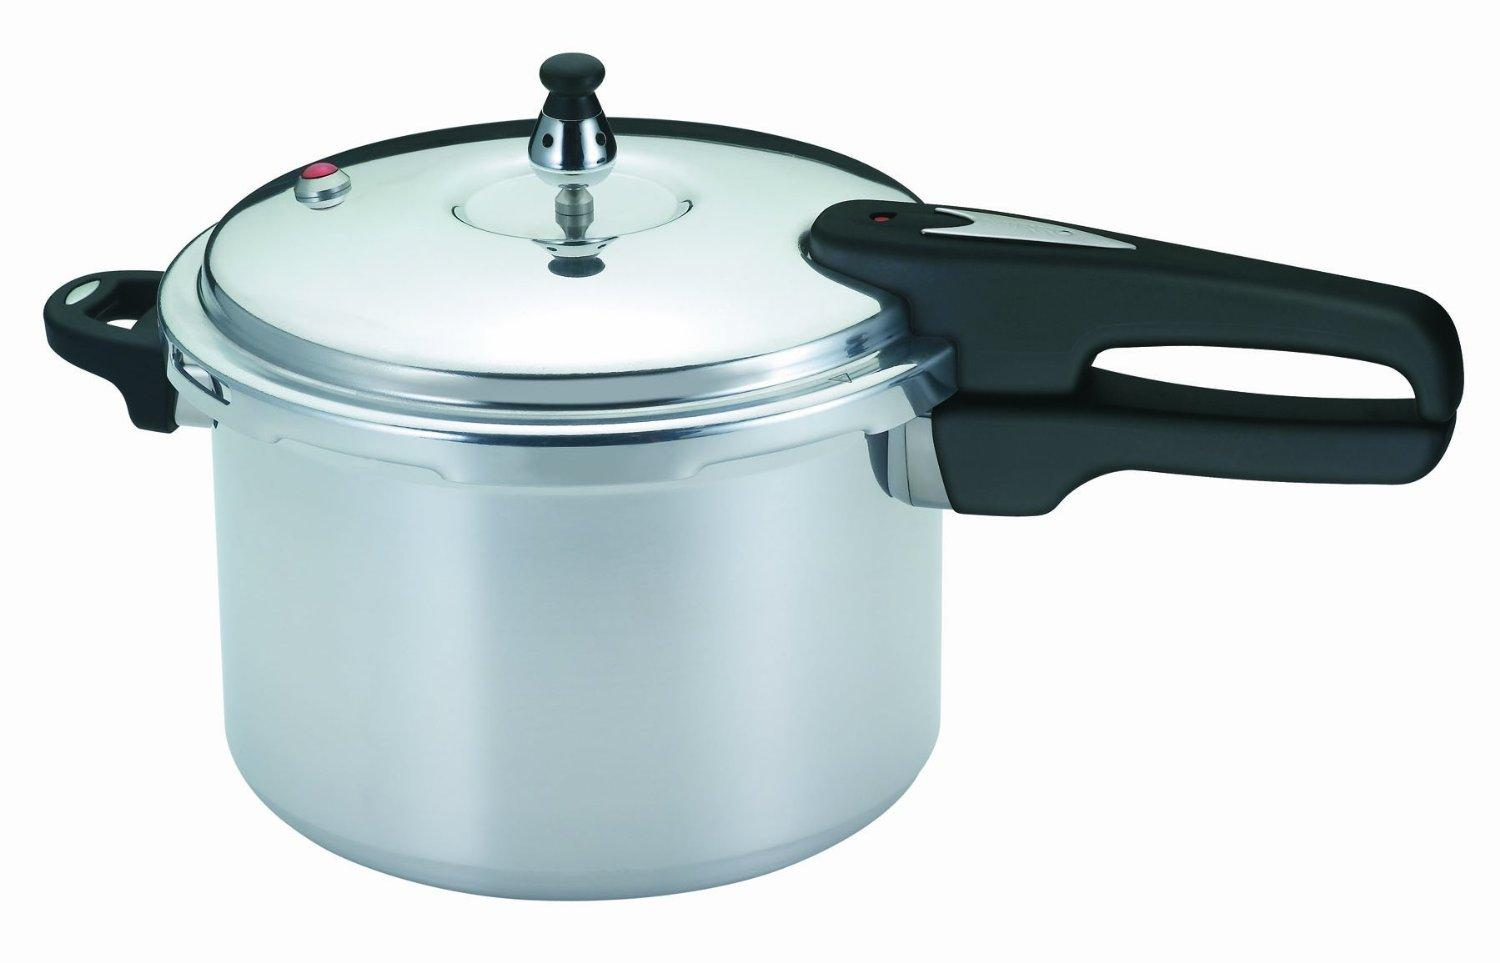 Mirro 92160A Polished Aluminum Pressure Cooker, 6-Quart, Silver, Exclusively for Prime Members